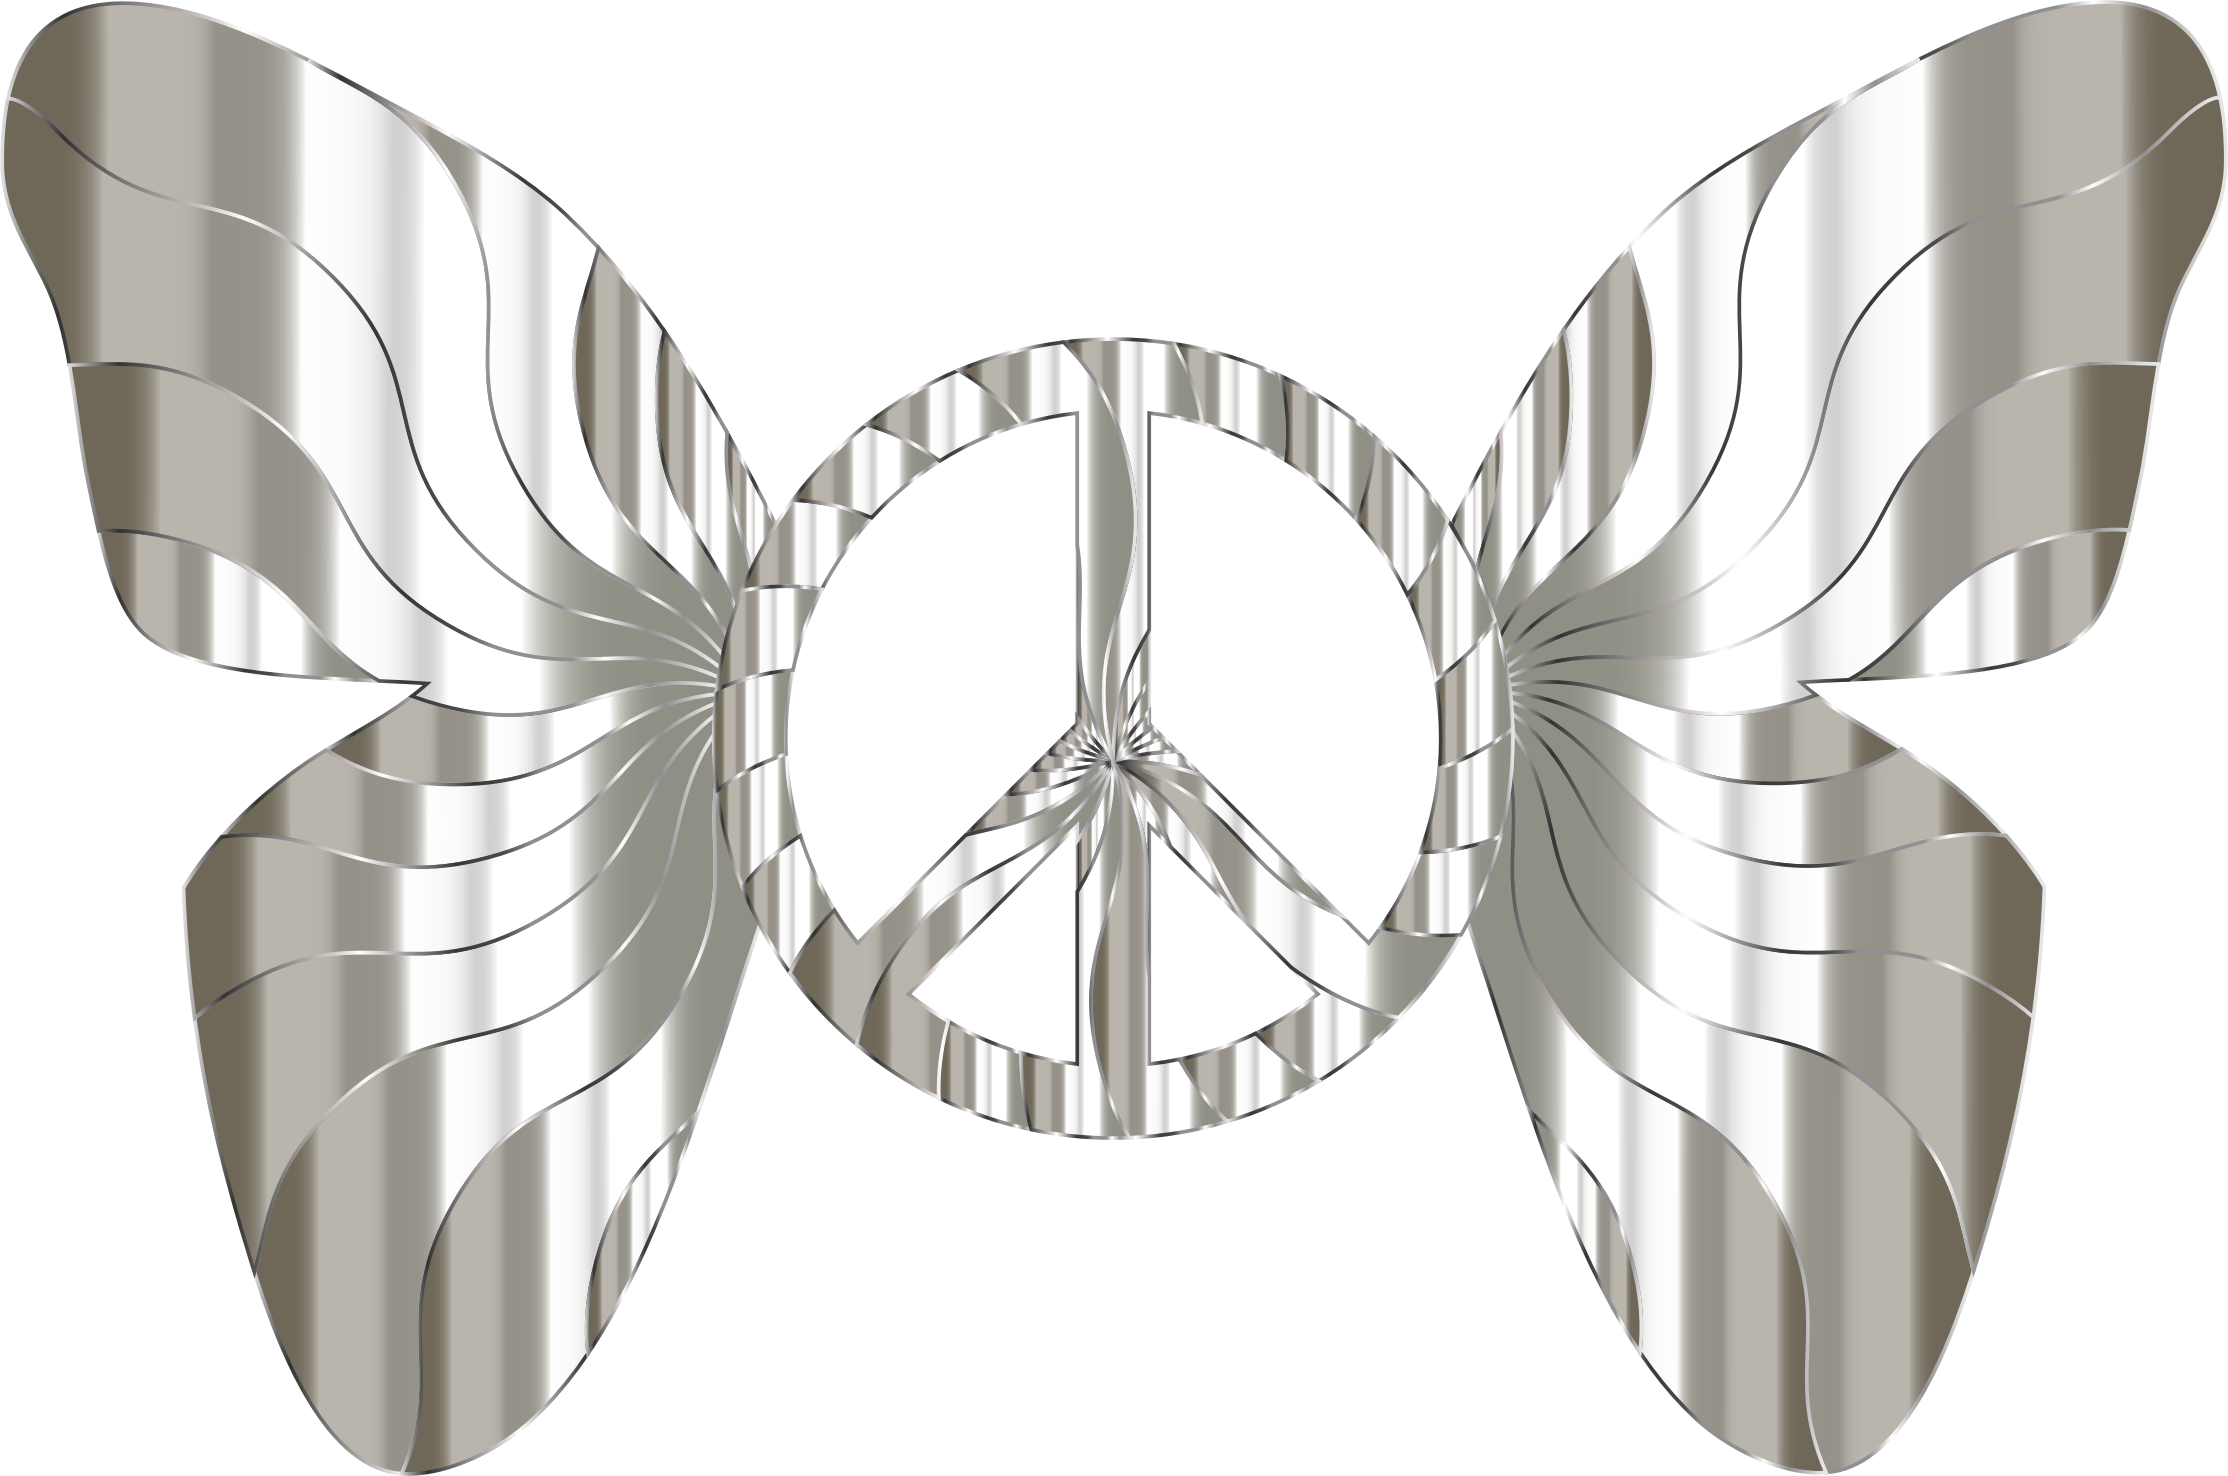 Groovy Peace Sign Butterfly 13 by GDJ